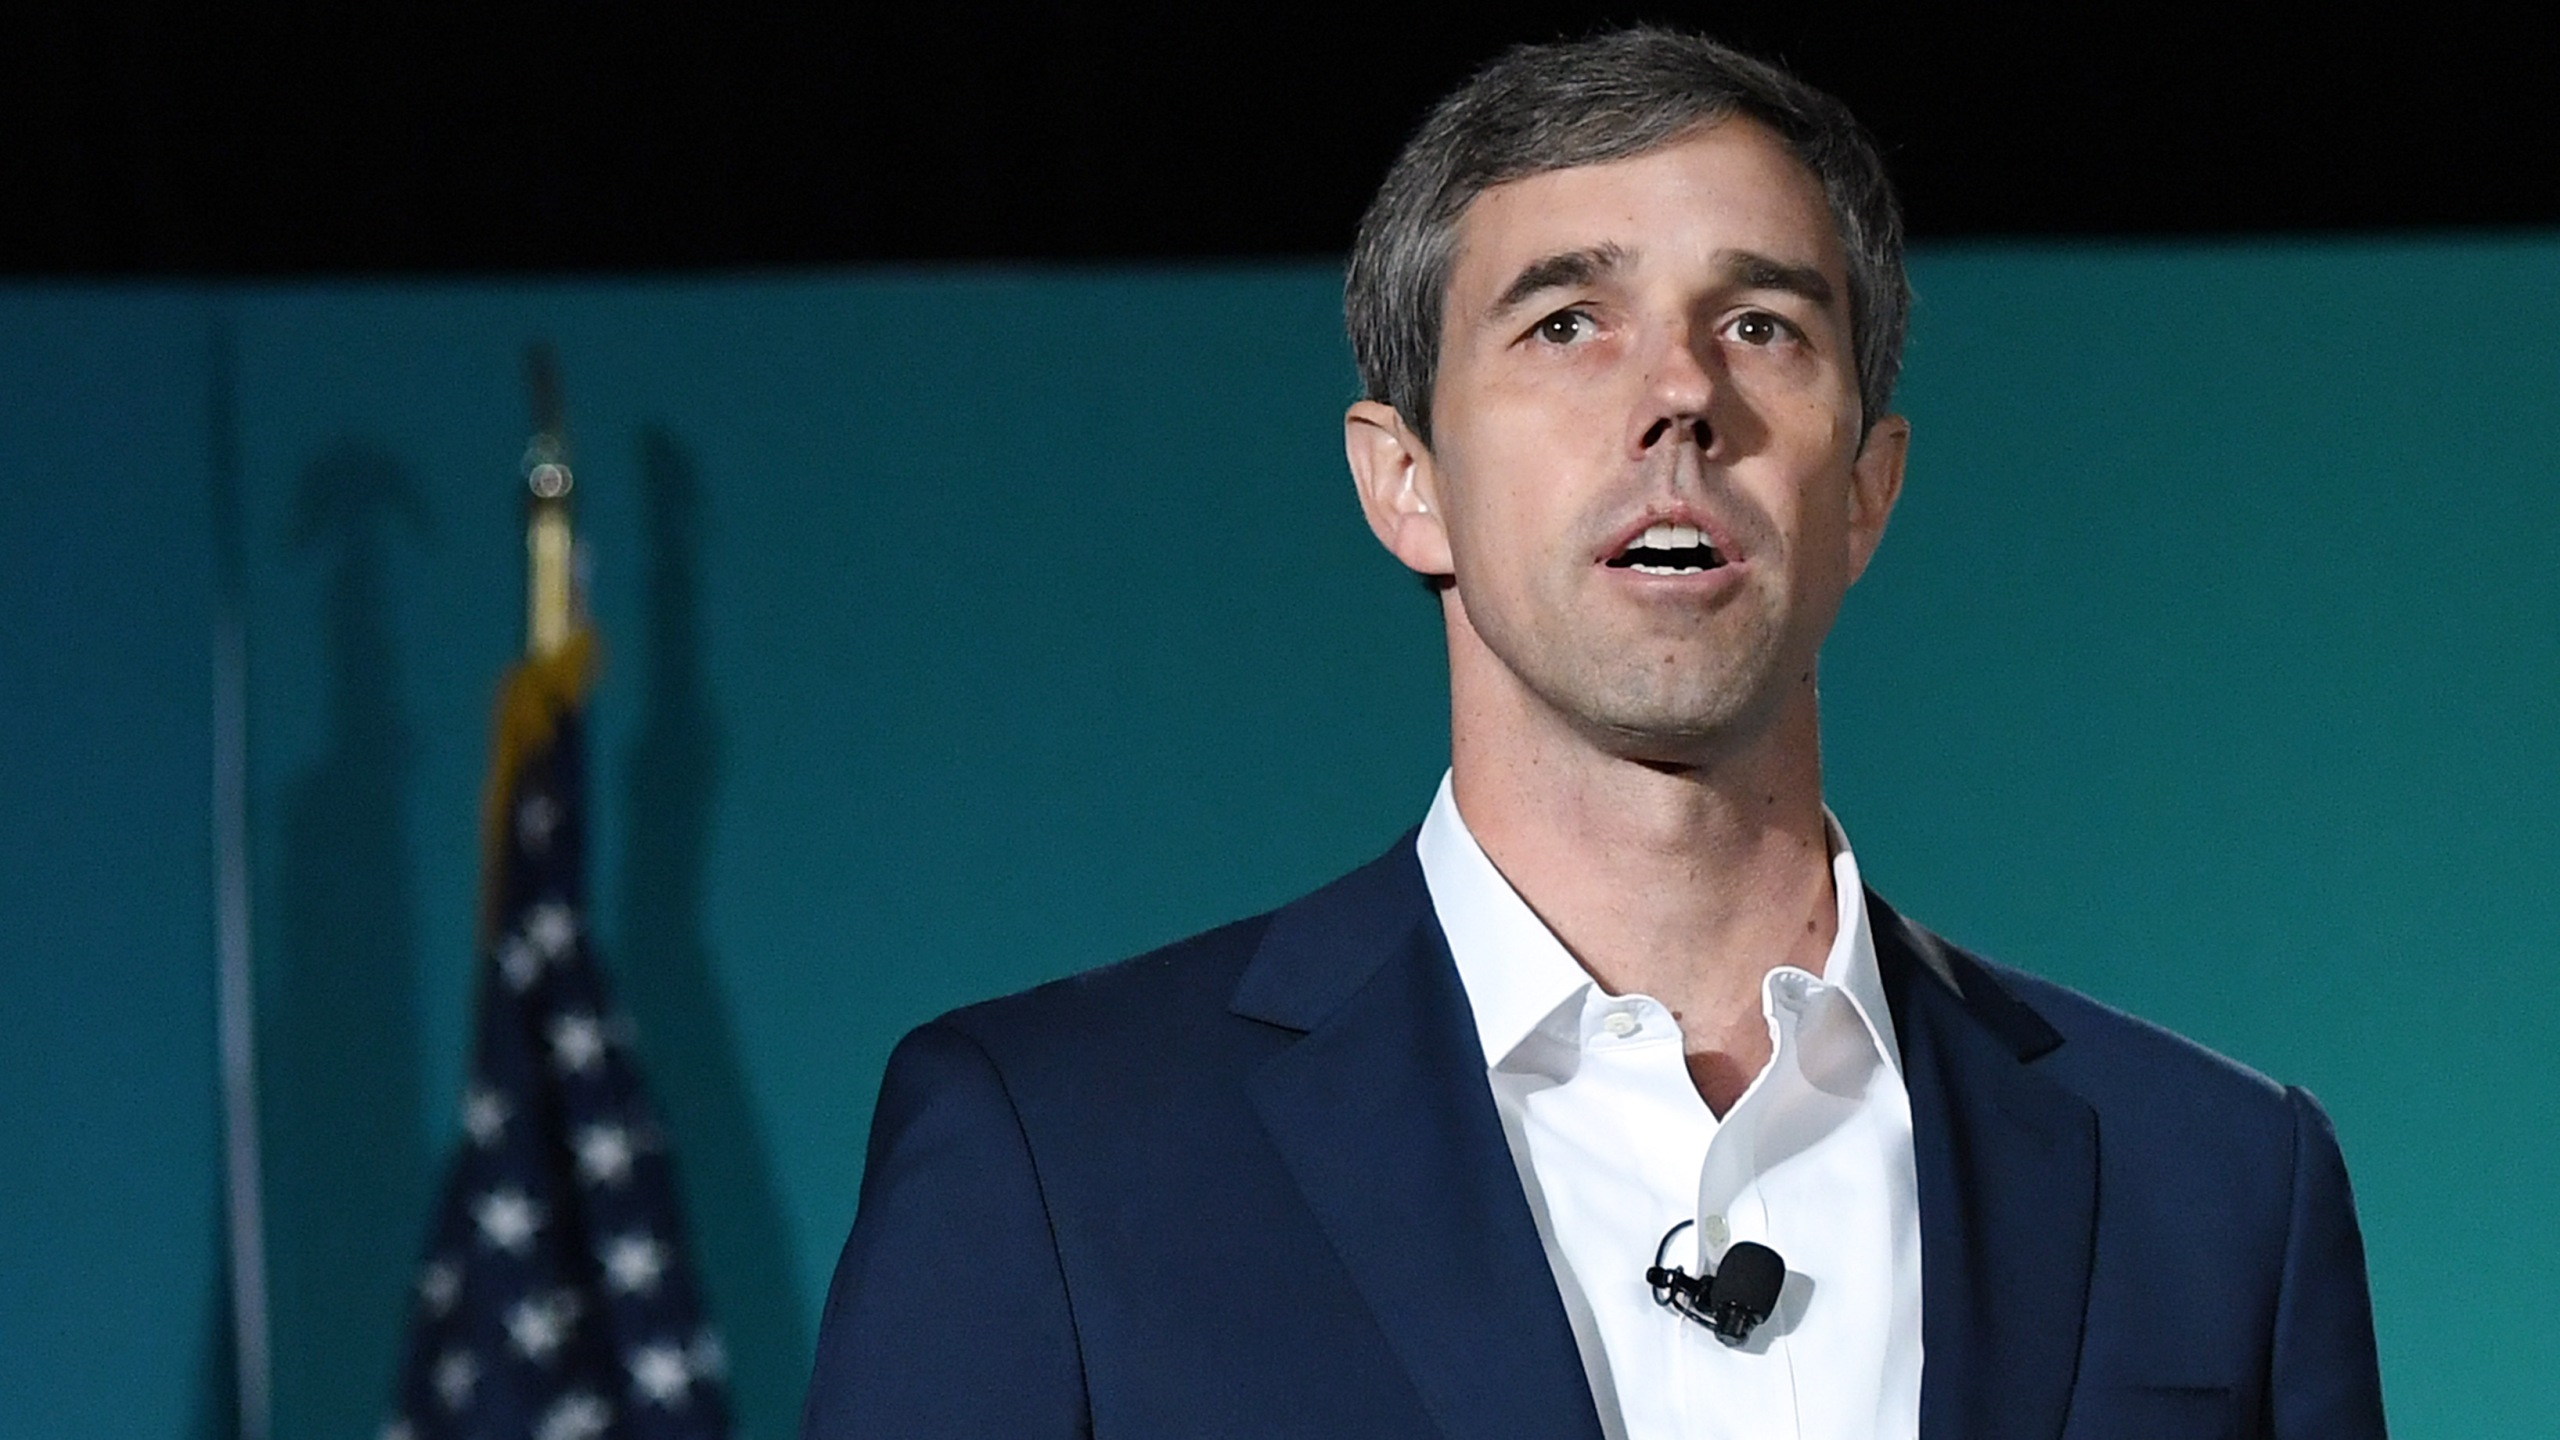 Democratic presidential candidate Beto O'Rourke speaks during the 2020 Public Service Forum hosted by the American Federation of State, County and Municipal Employees (AFSCME) at UNLV on Aug. 3, 2019, in Las Vegas, Nevada. (Credit: Ethan Miller/Getty Images)